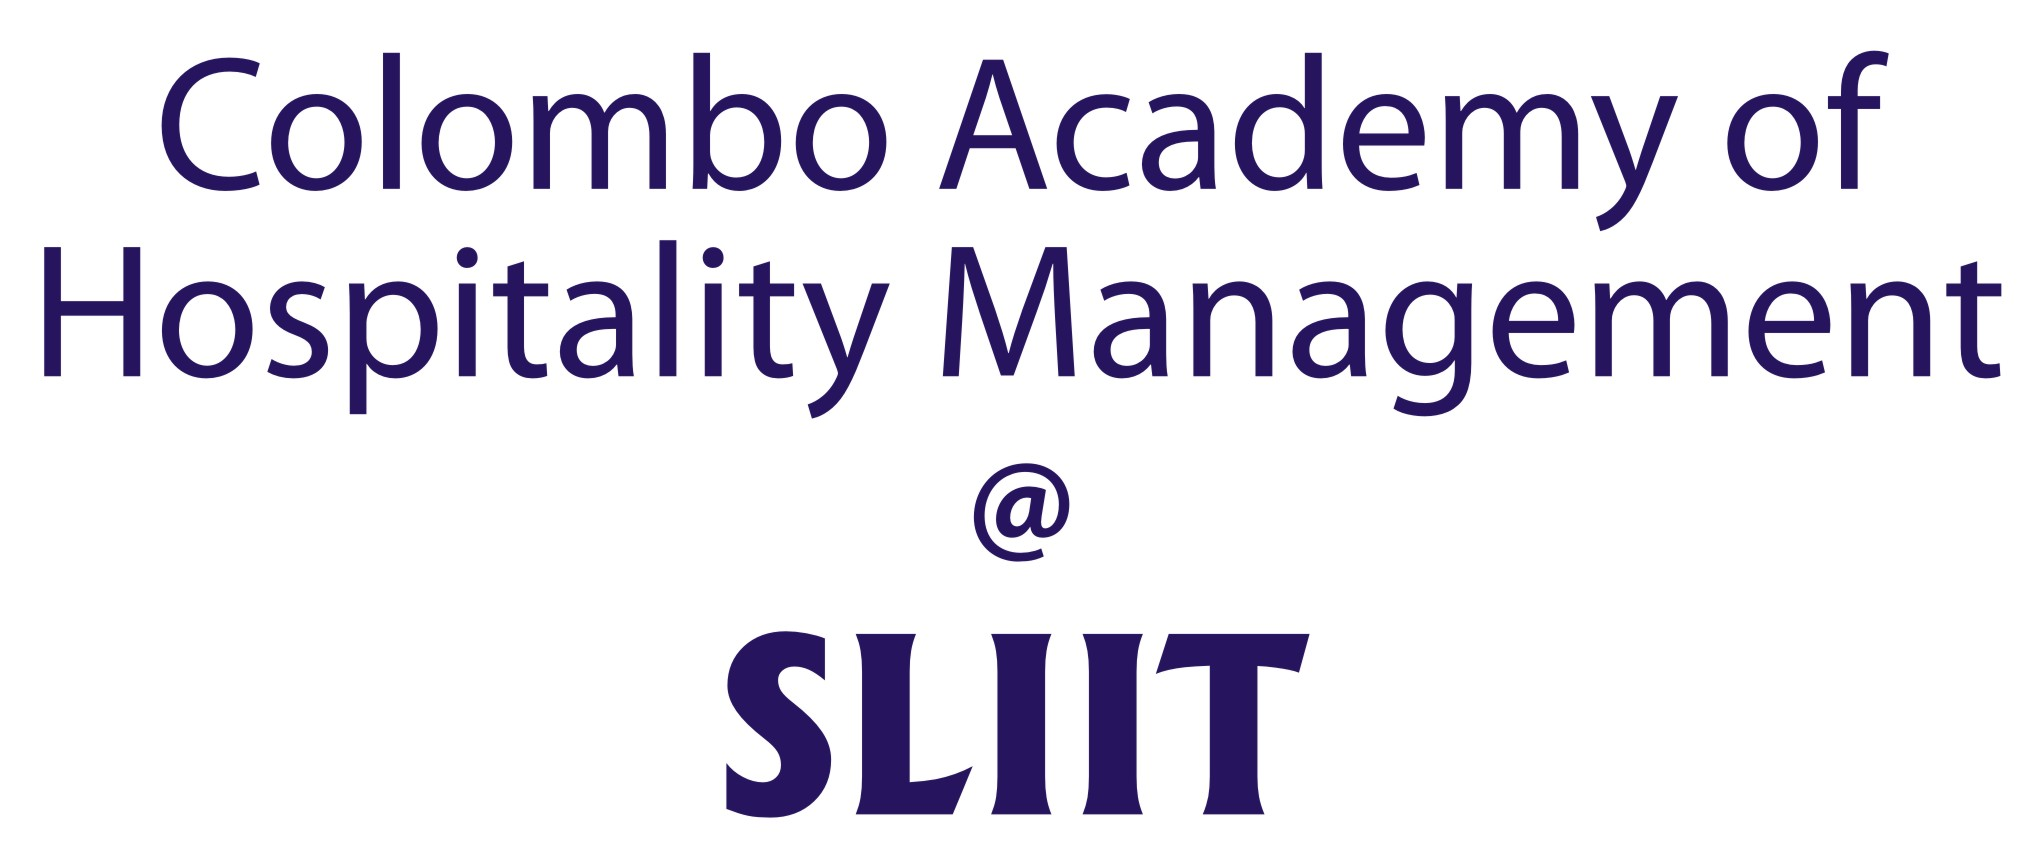 COLOMBO ACADEMY OF HOSPITALITY MANAGEMENT - CAHM